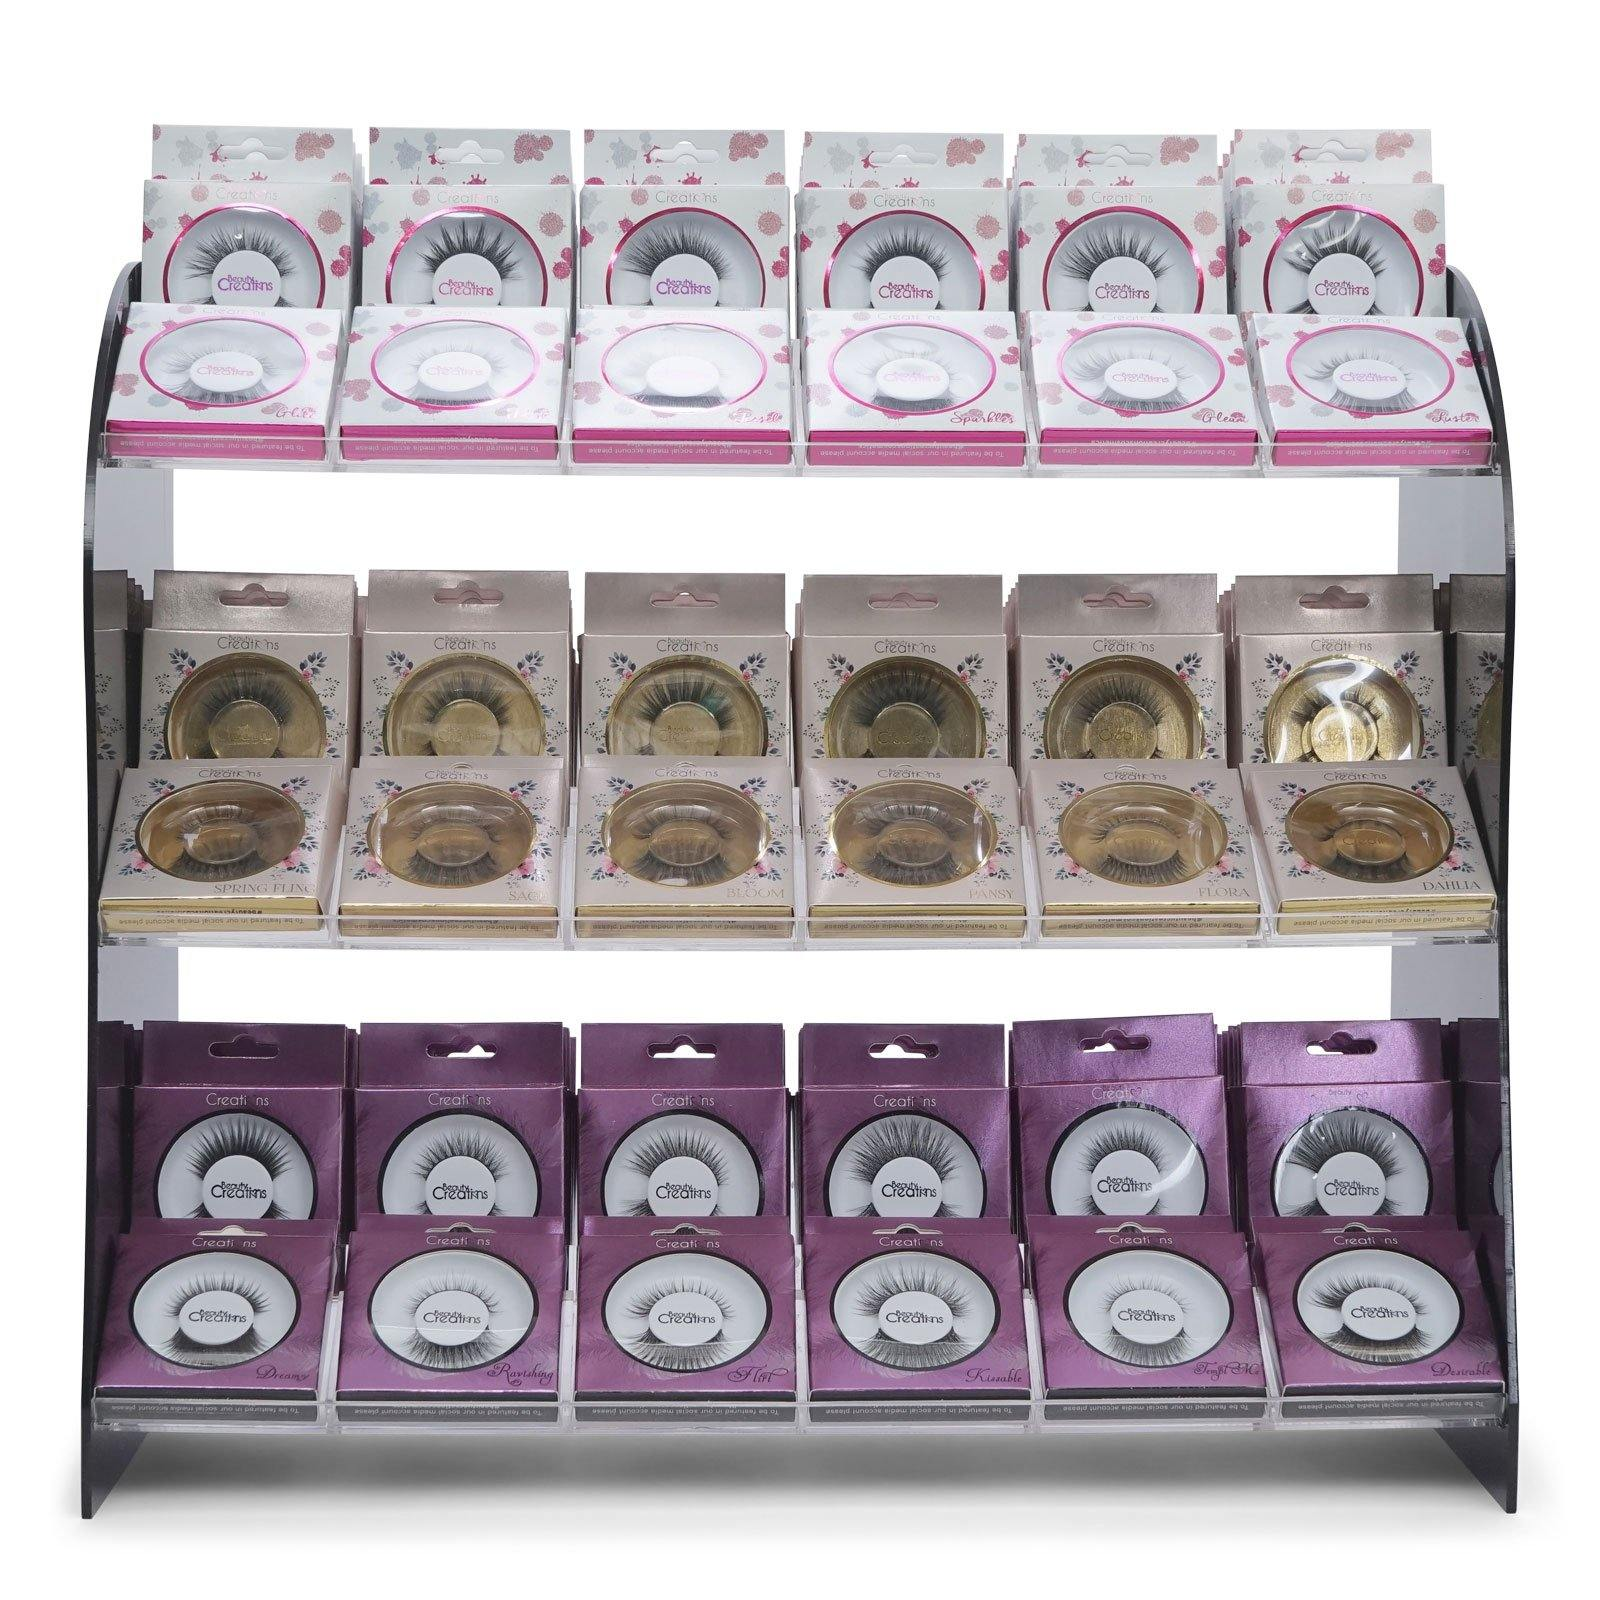 Beauty Creations 3D Silk Eyelash Display, Splash-Floral-Purple (Display of 180) (1/cs)